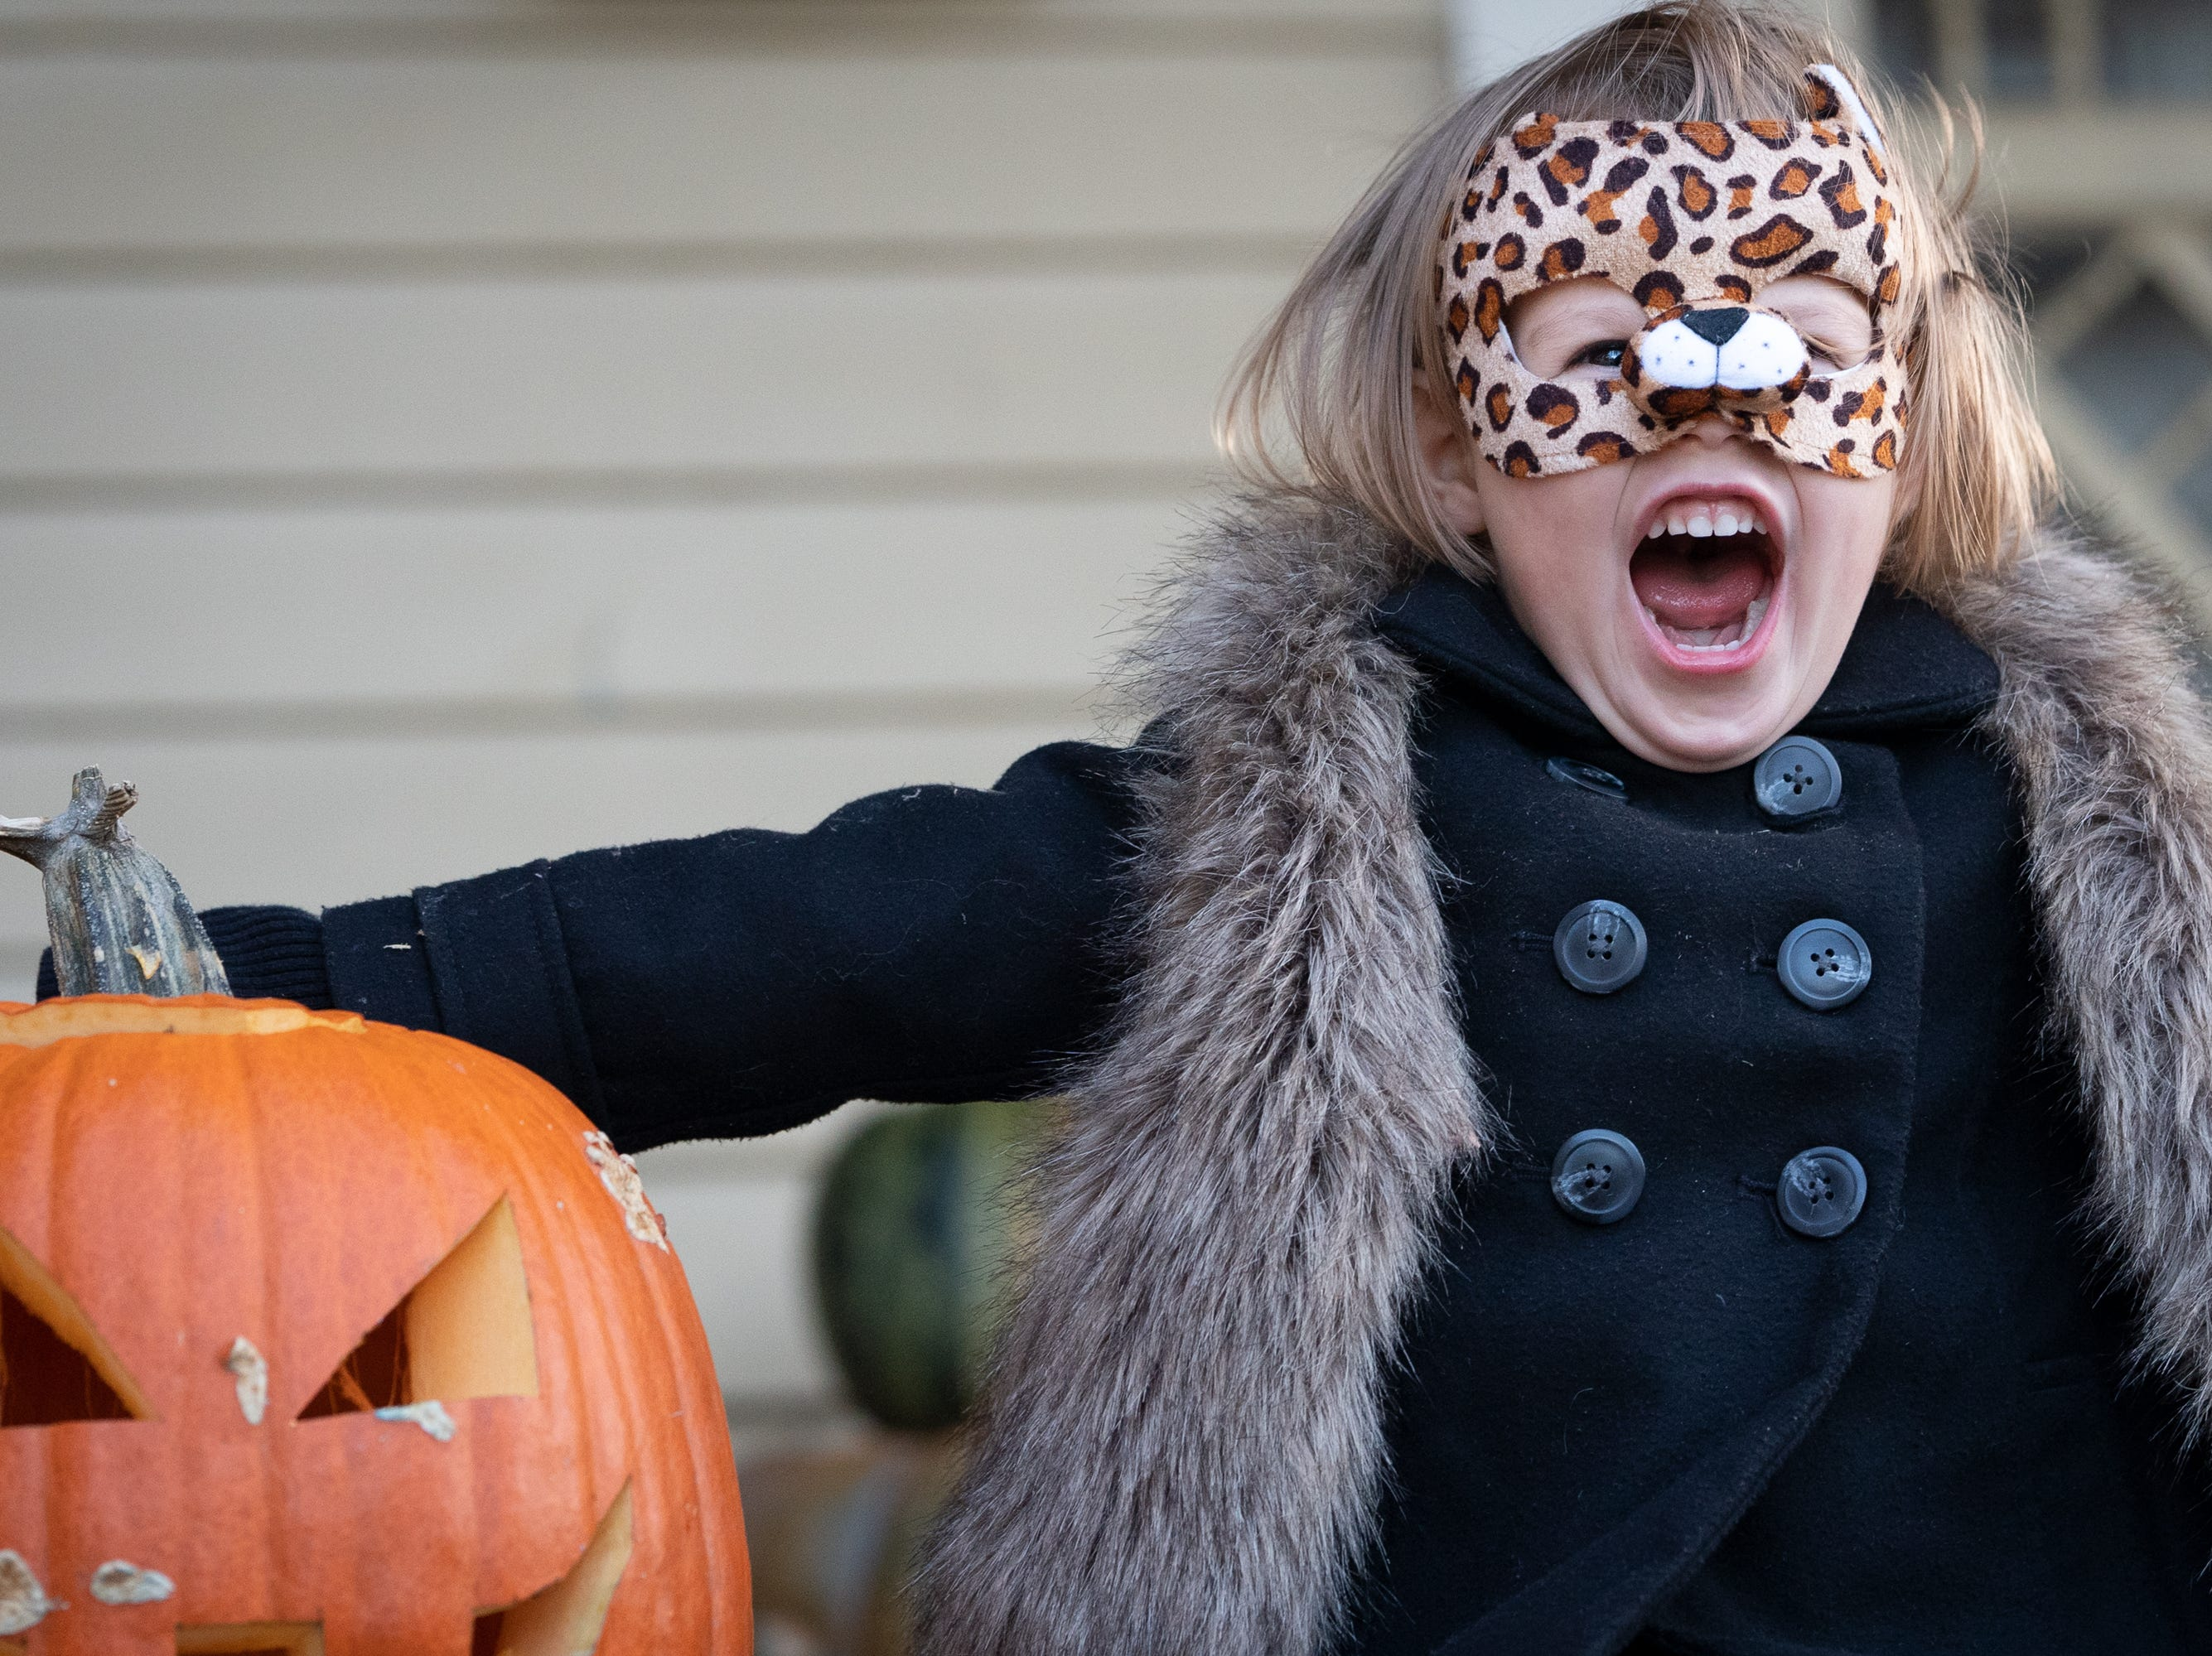 Meredith Chybowskimills shows off her cheetah look as she waits for trick or treaters on Merritt Avenue. Children, along with their parents, made the most of the beautiful autumn weather to trick or treat in Oshkosh Wednesday evening.